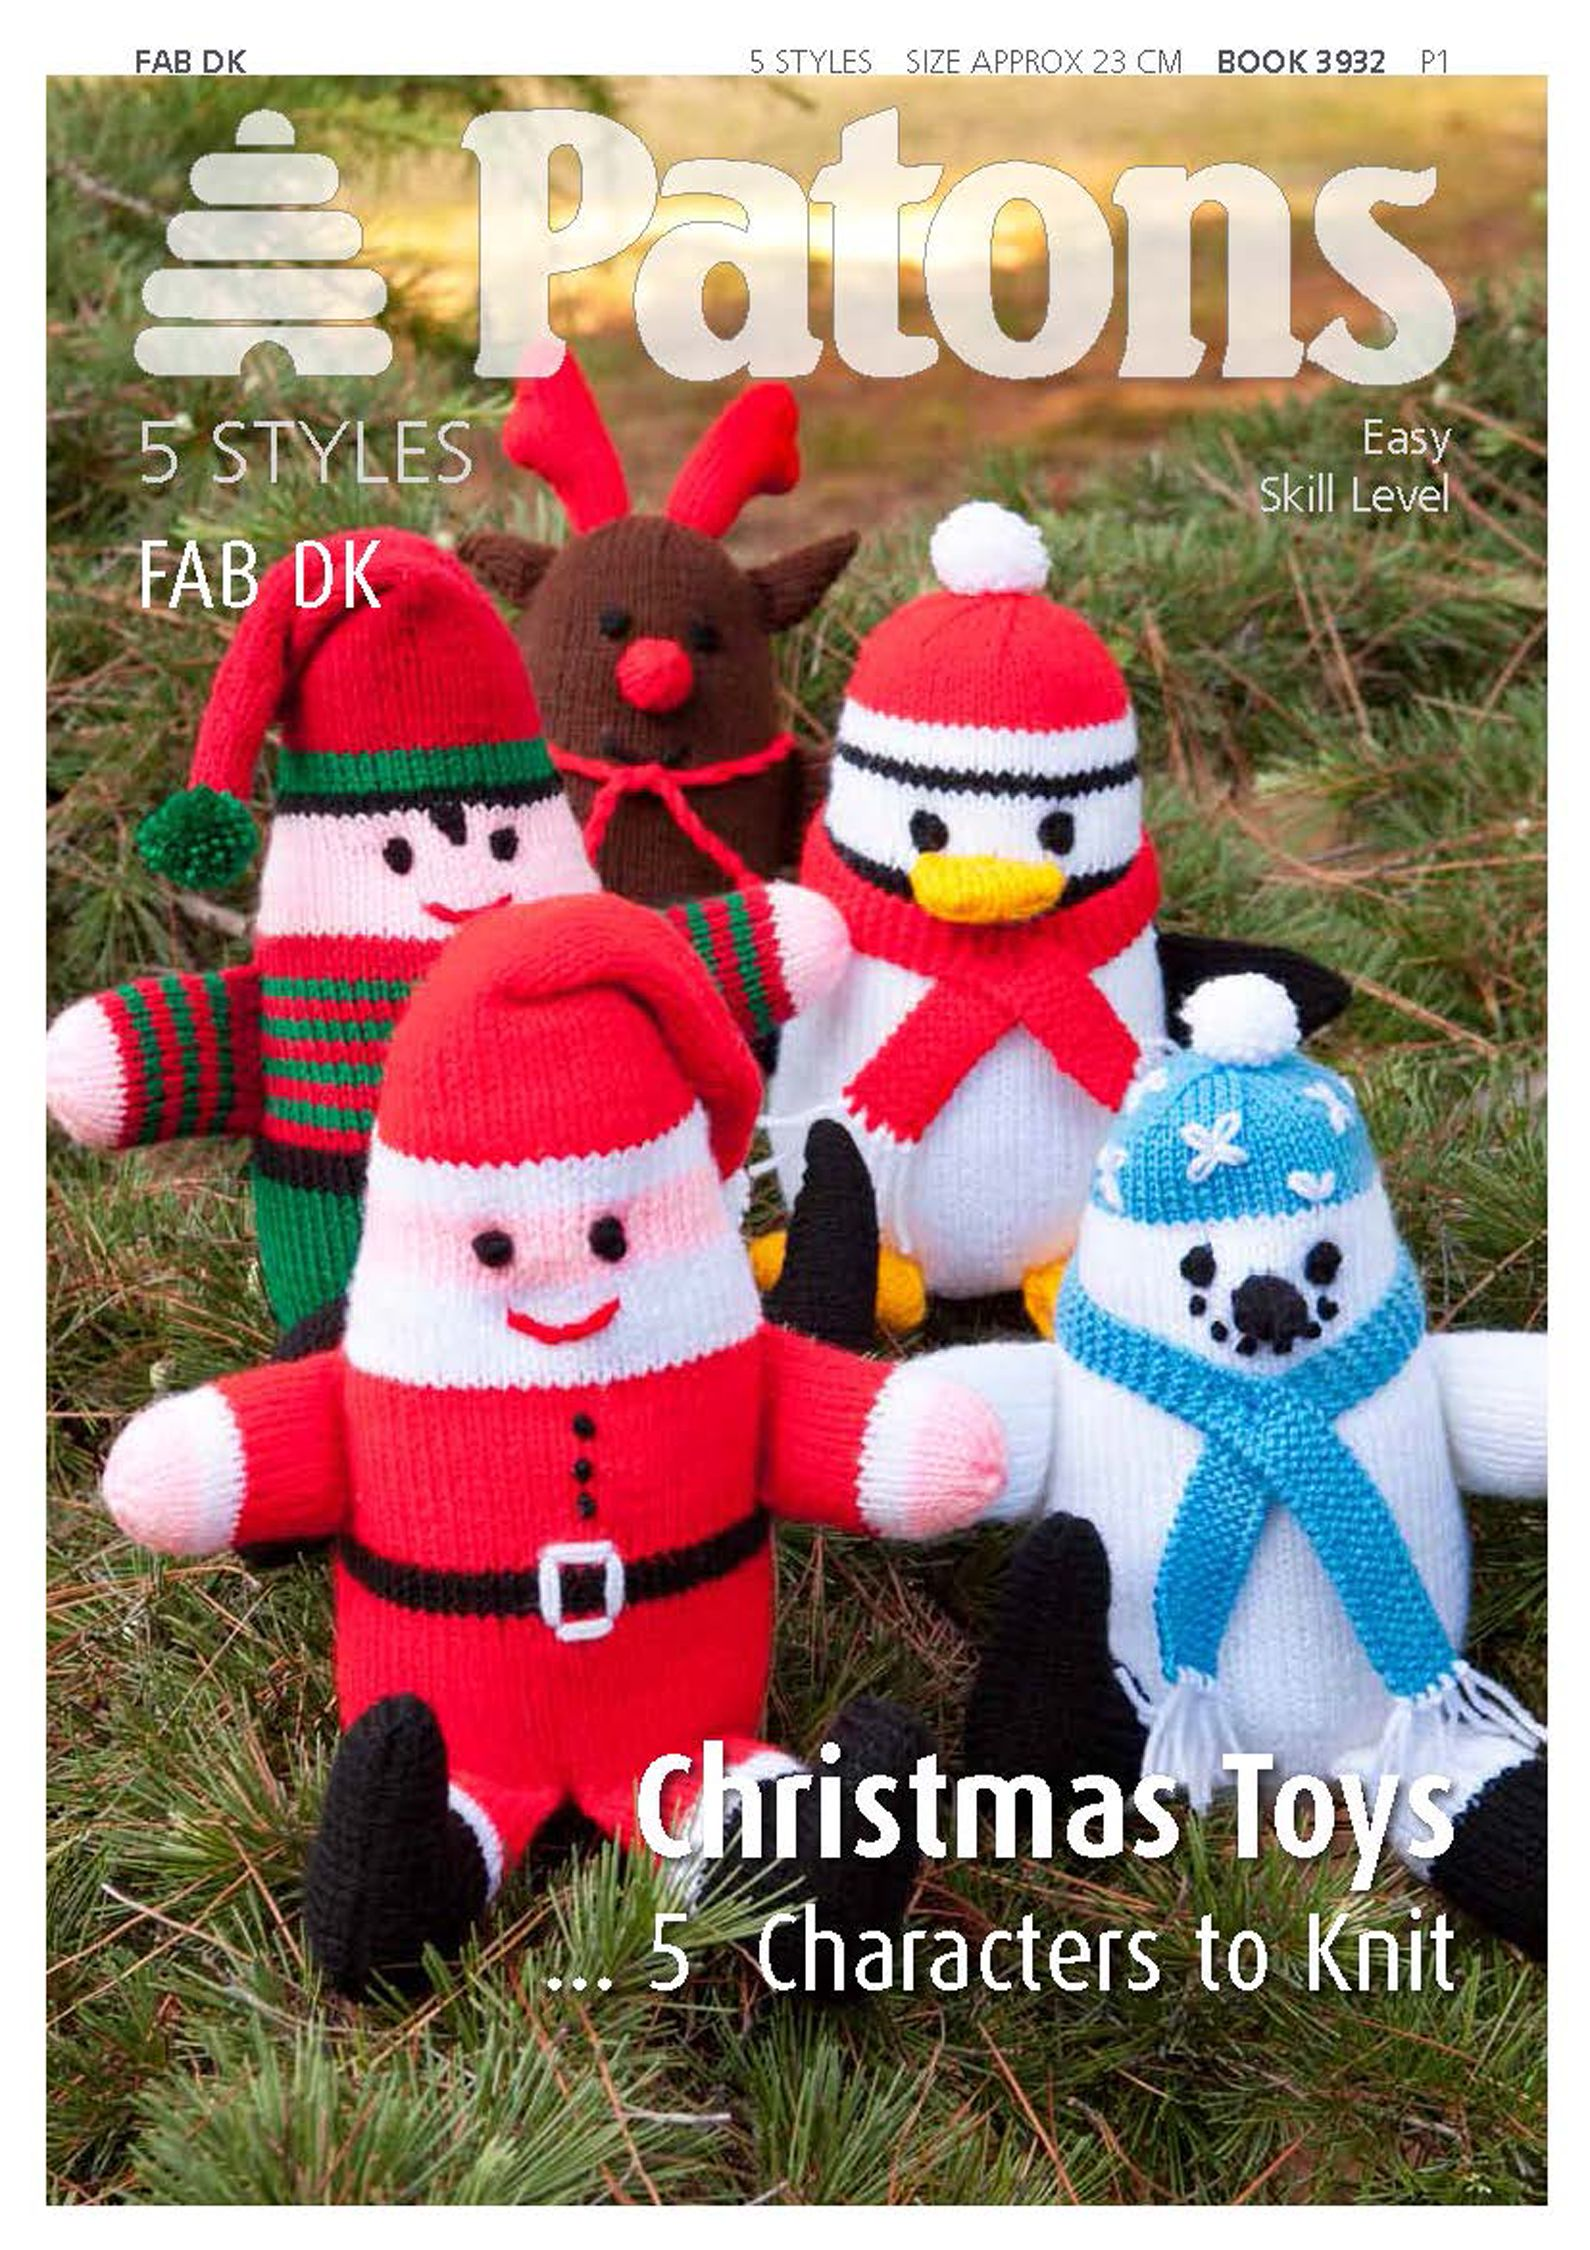 John Lewis Snowman Knitting Pattern : Buy Patons Yarn Christmas Toys Knitting Pattern John Lewis